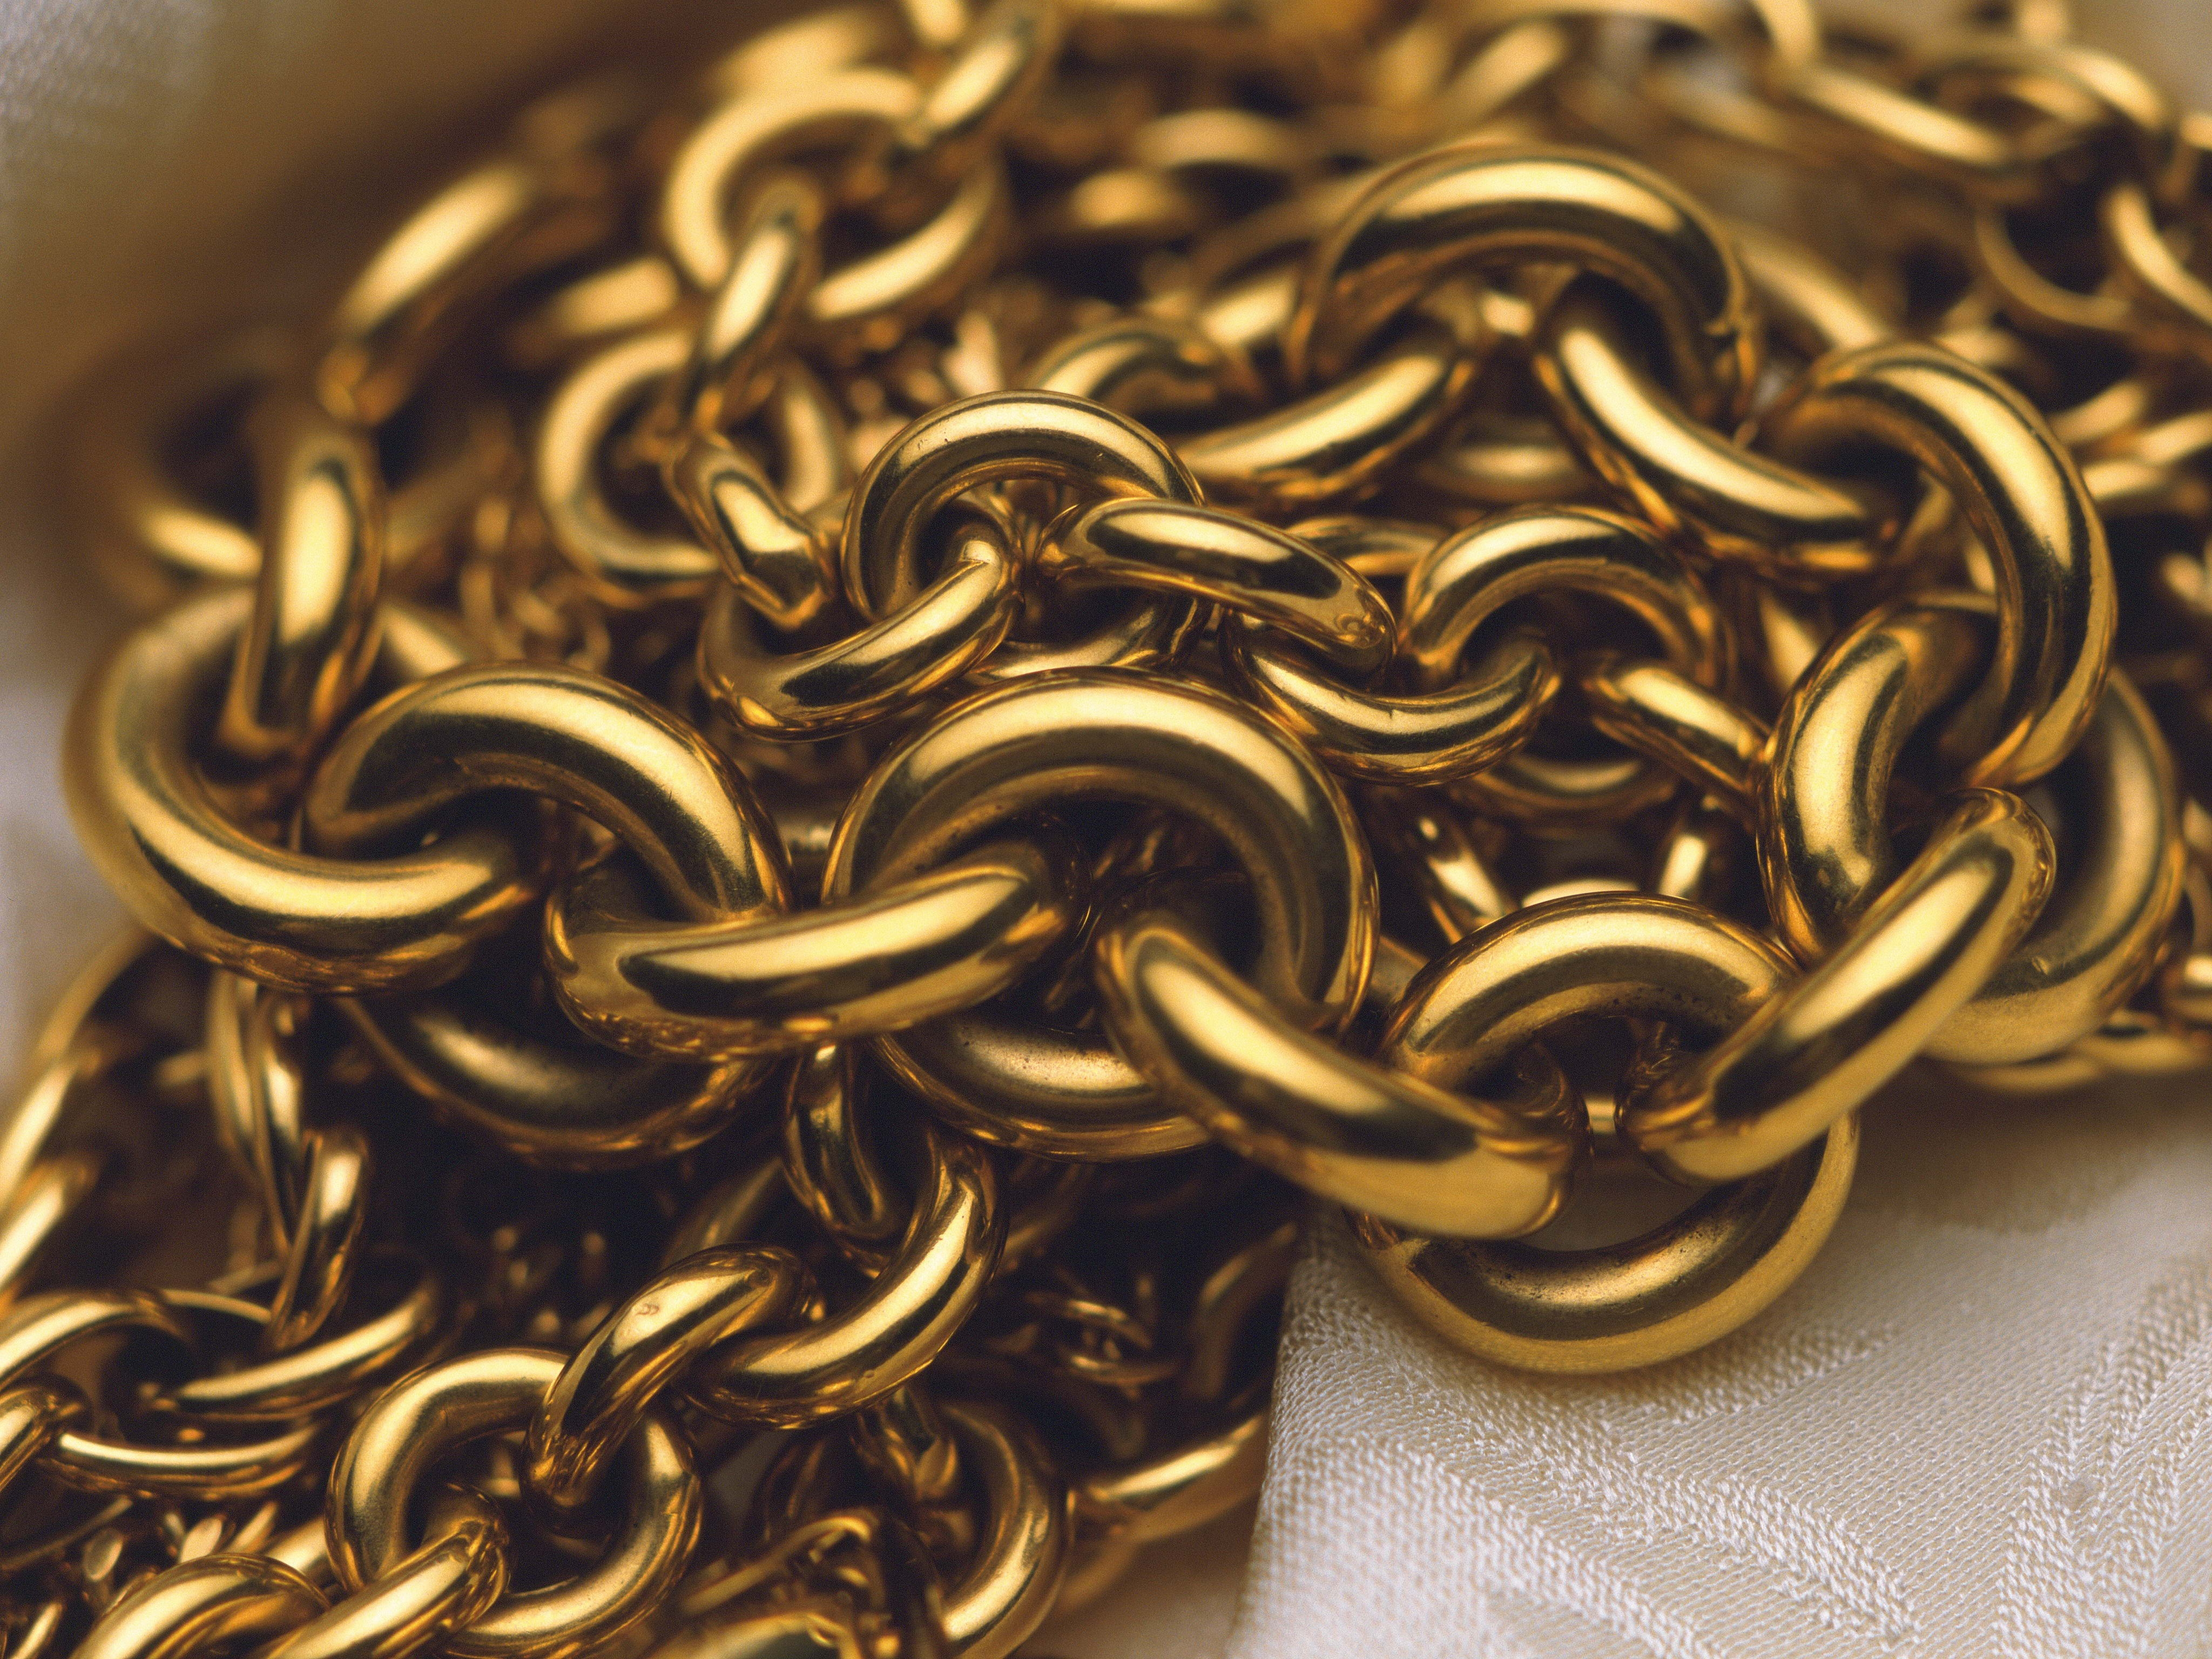 147012 download wallpaper Miscellanea, Miscellaneous, Chain, Gold, Close-Up screensavers and pictures for free